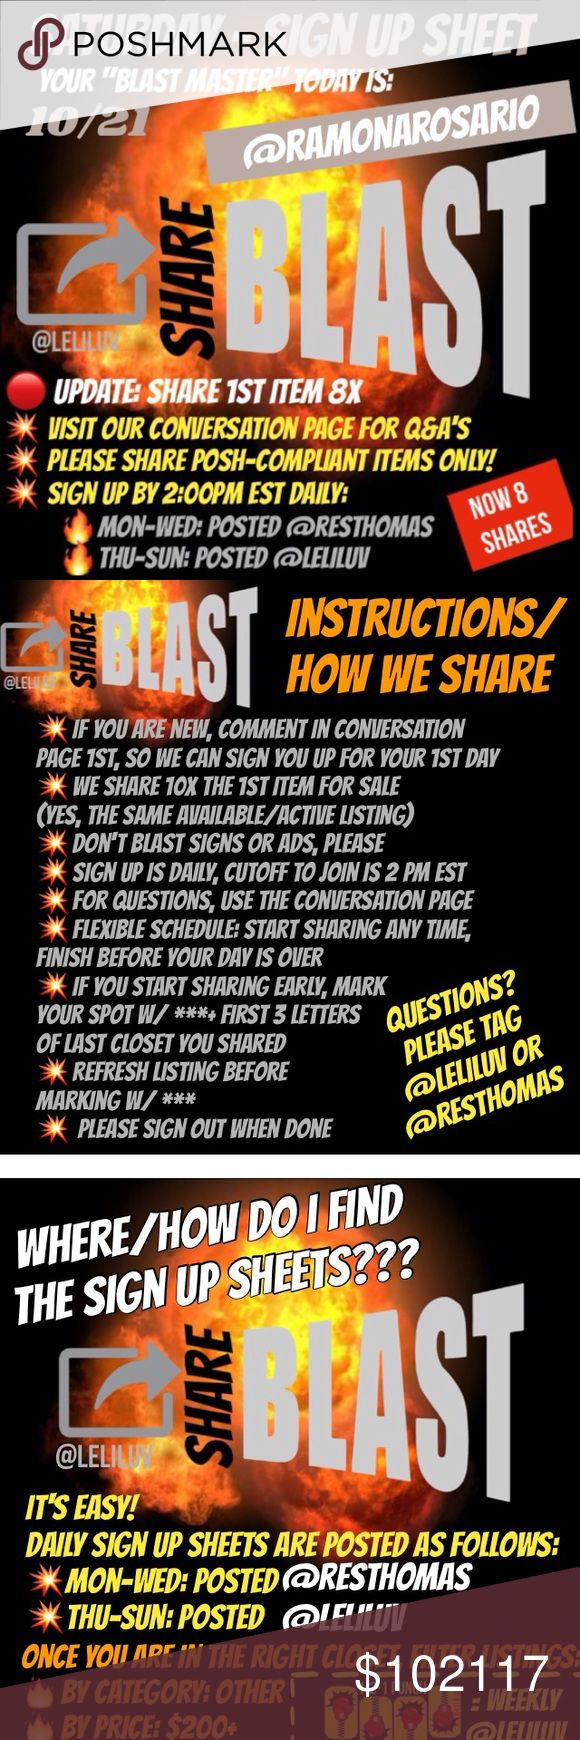 Sat 10/21 - Share-Blast sign up sheet See pictures for details! Other